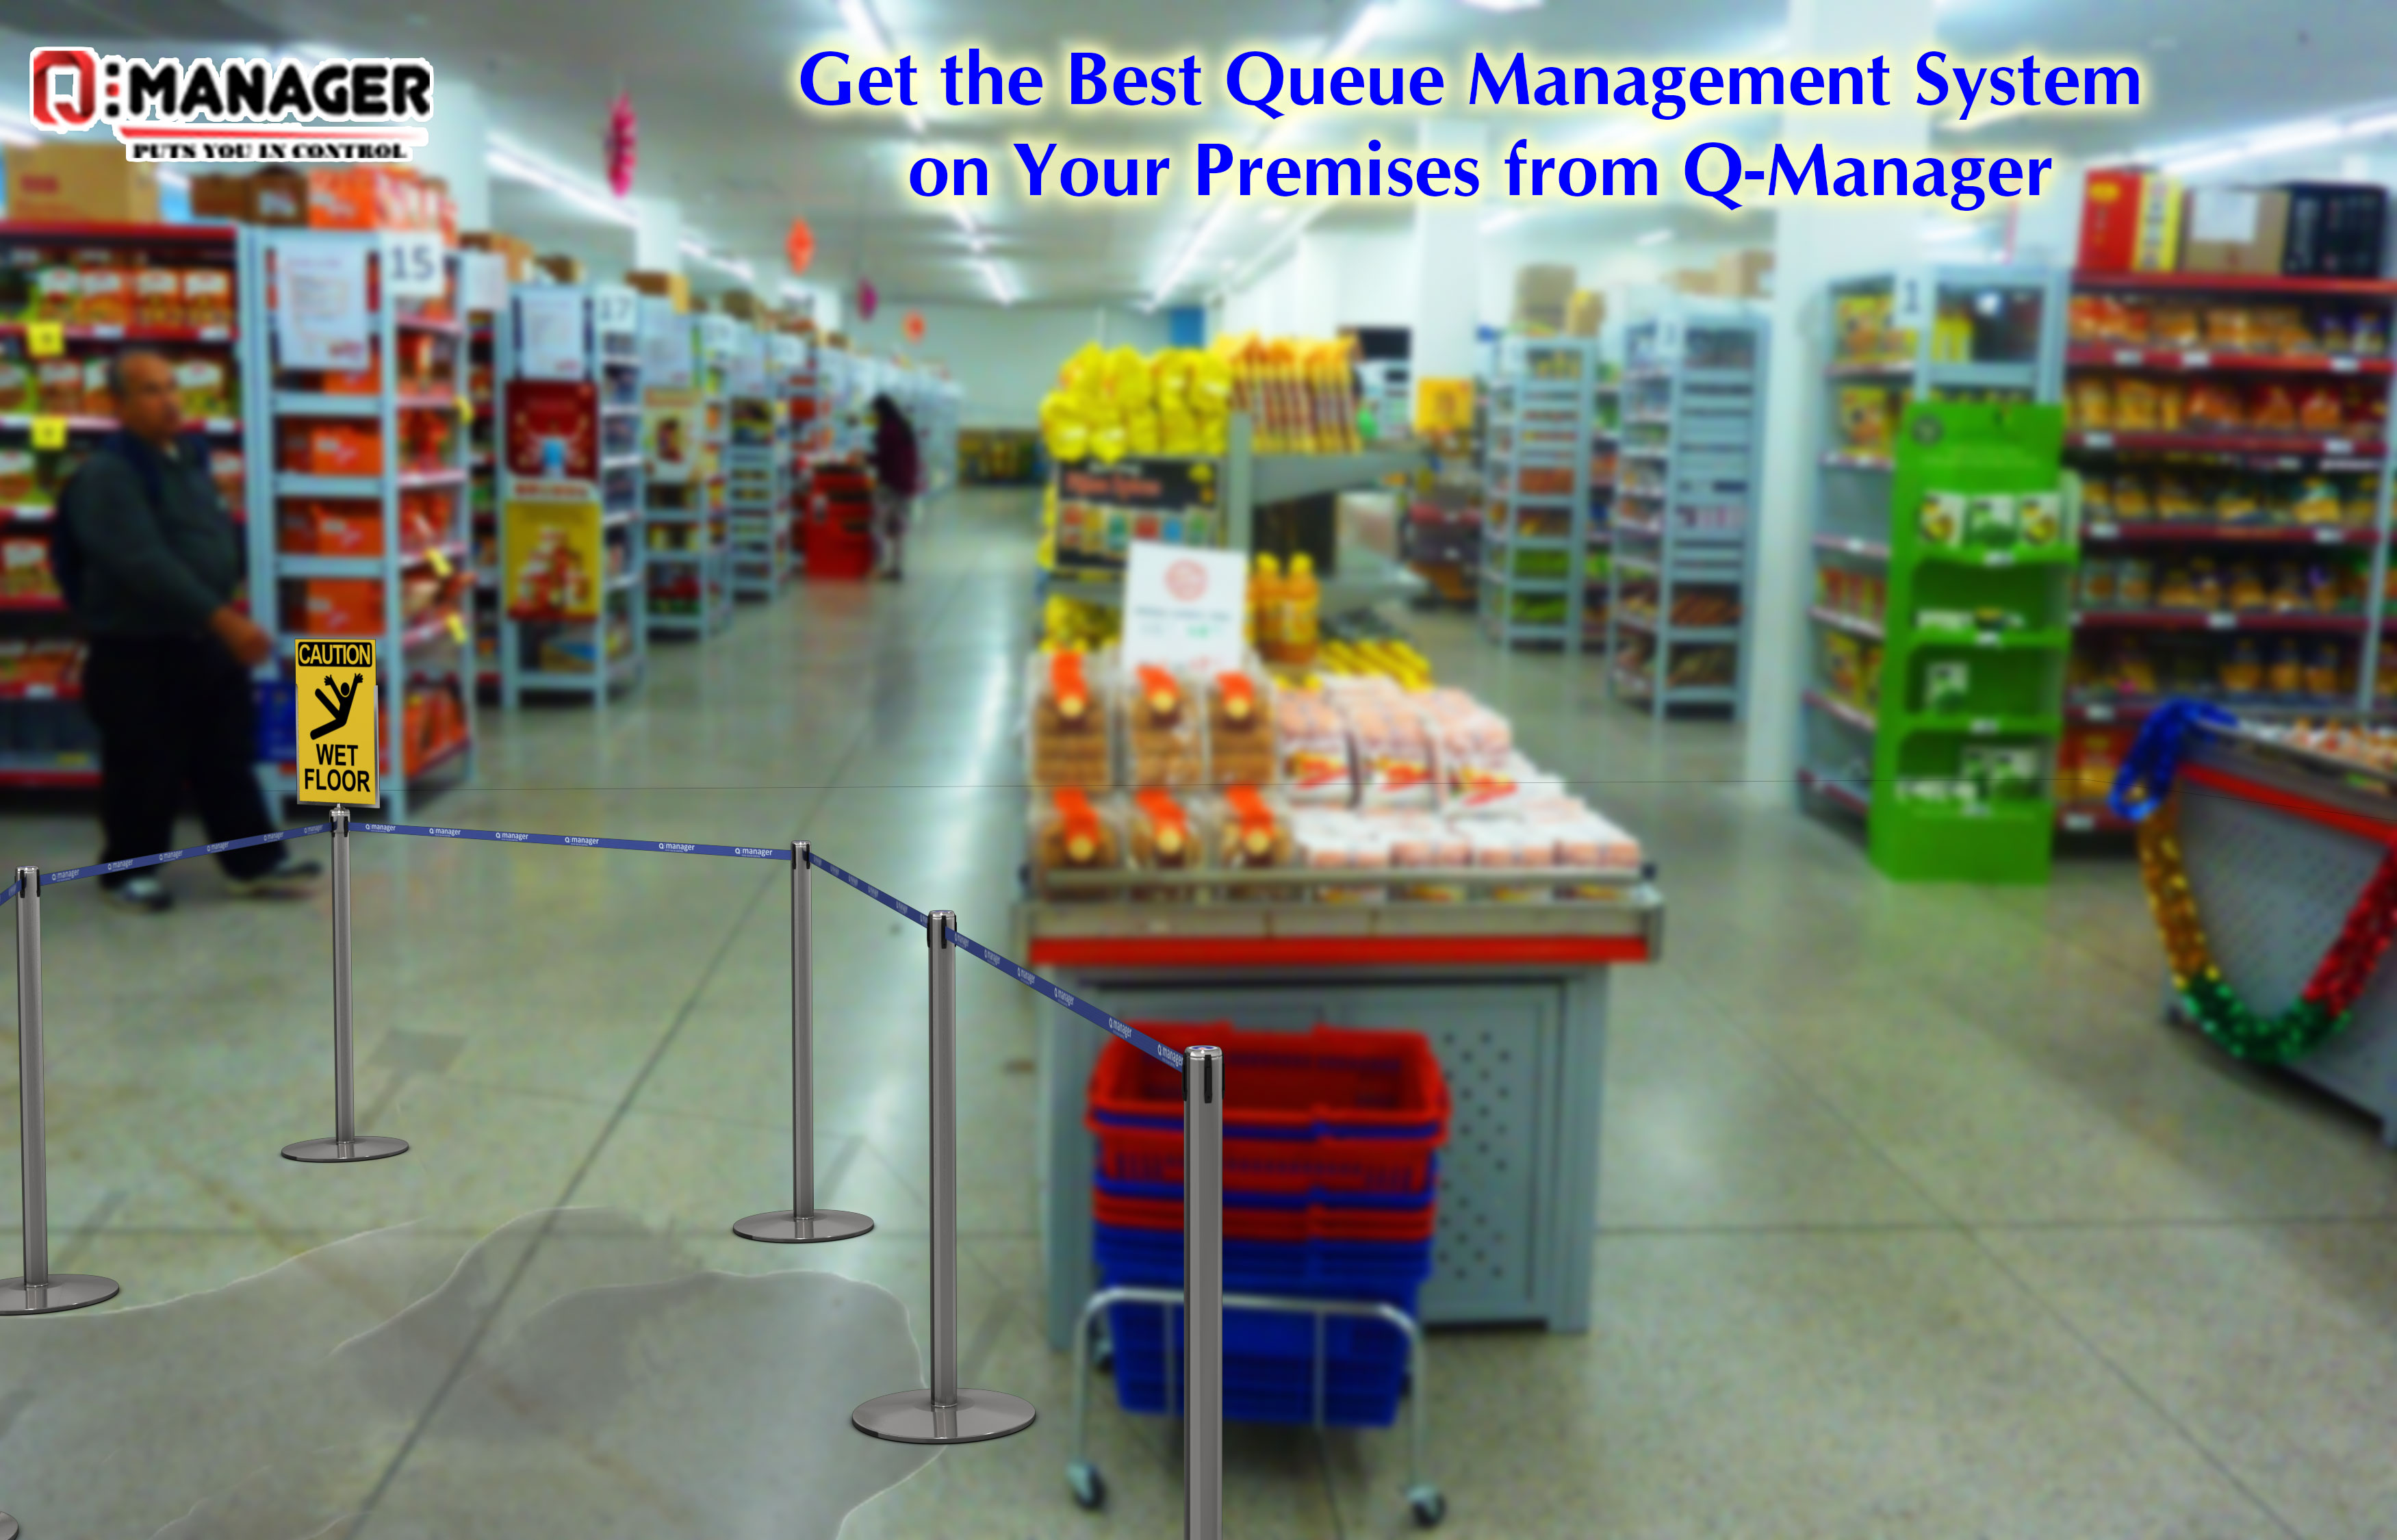 Get the Best Queue Management System on Your Premises from Q-Manager